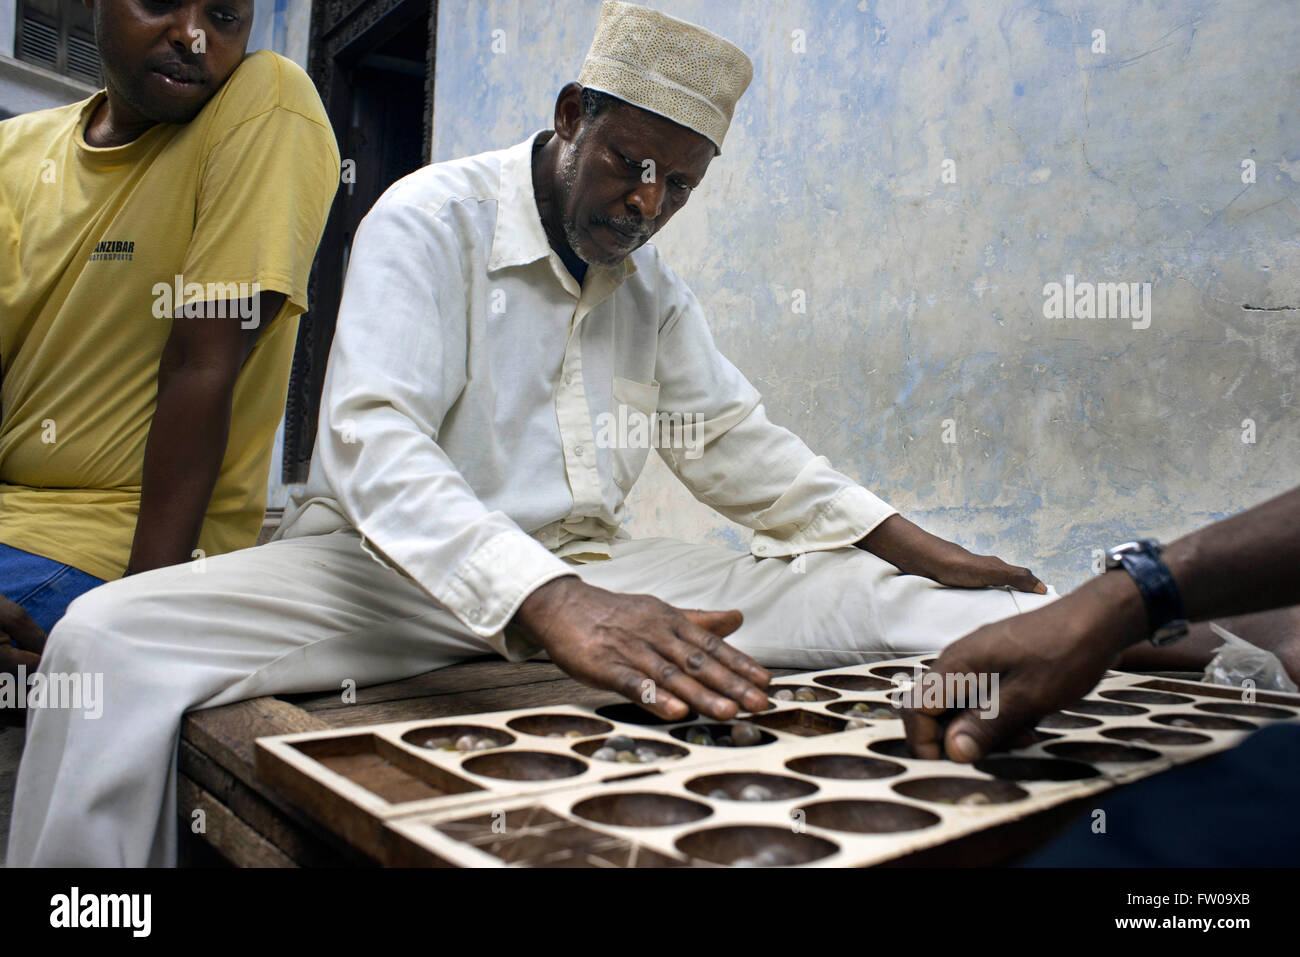 Bao players in Stone Town, Zanzibar. Bao is a traditional mancala board game played in most of East Africa including - Stock Image